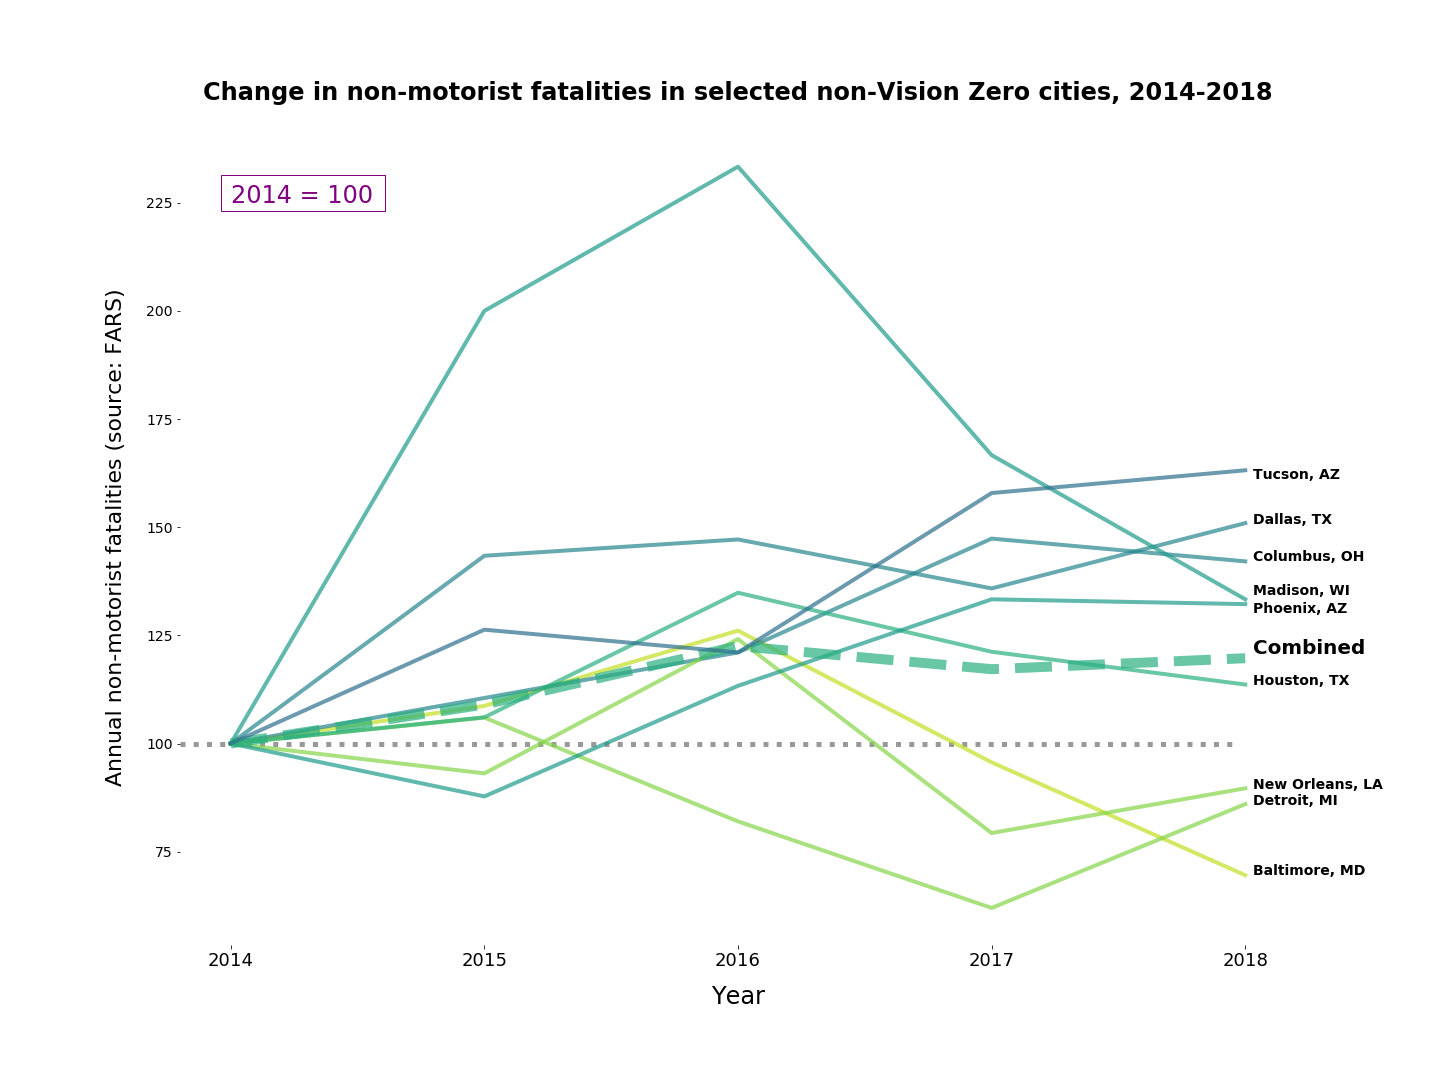 Chart showing non-motorist fatalities in non-Vision Zero cities from 2014-2018, showing an increase of about 20% over the period.